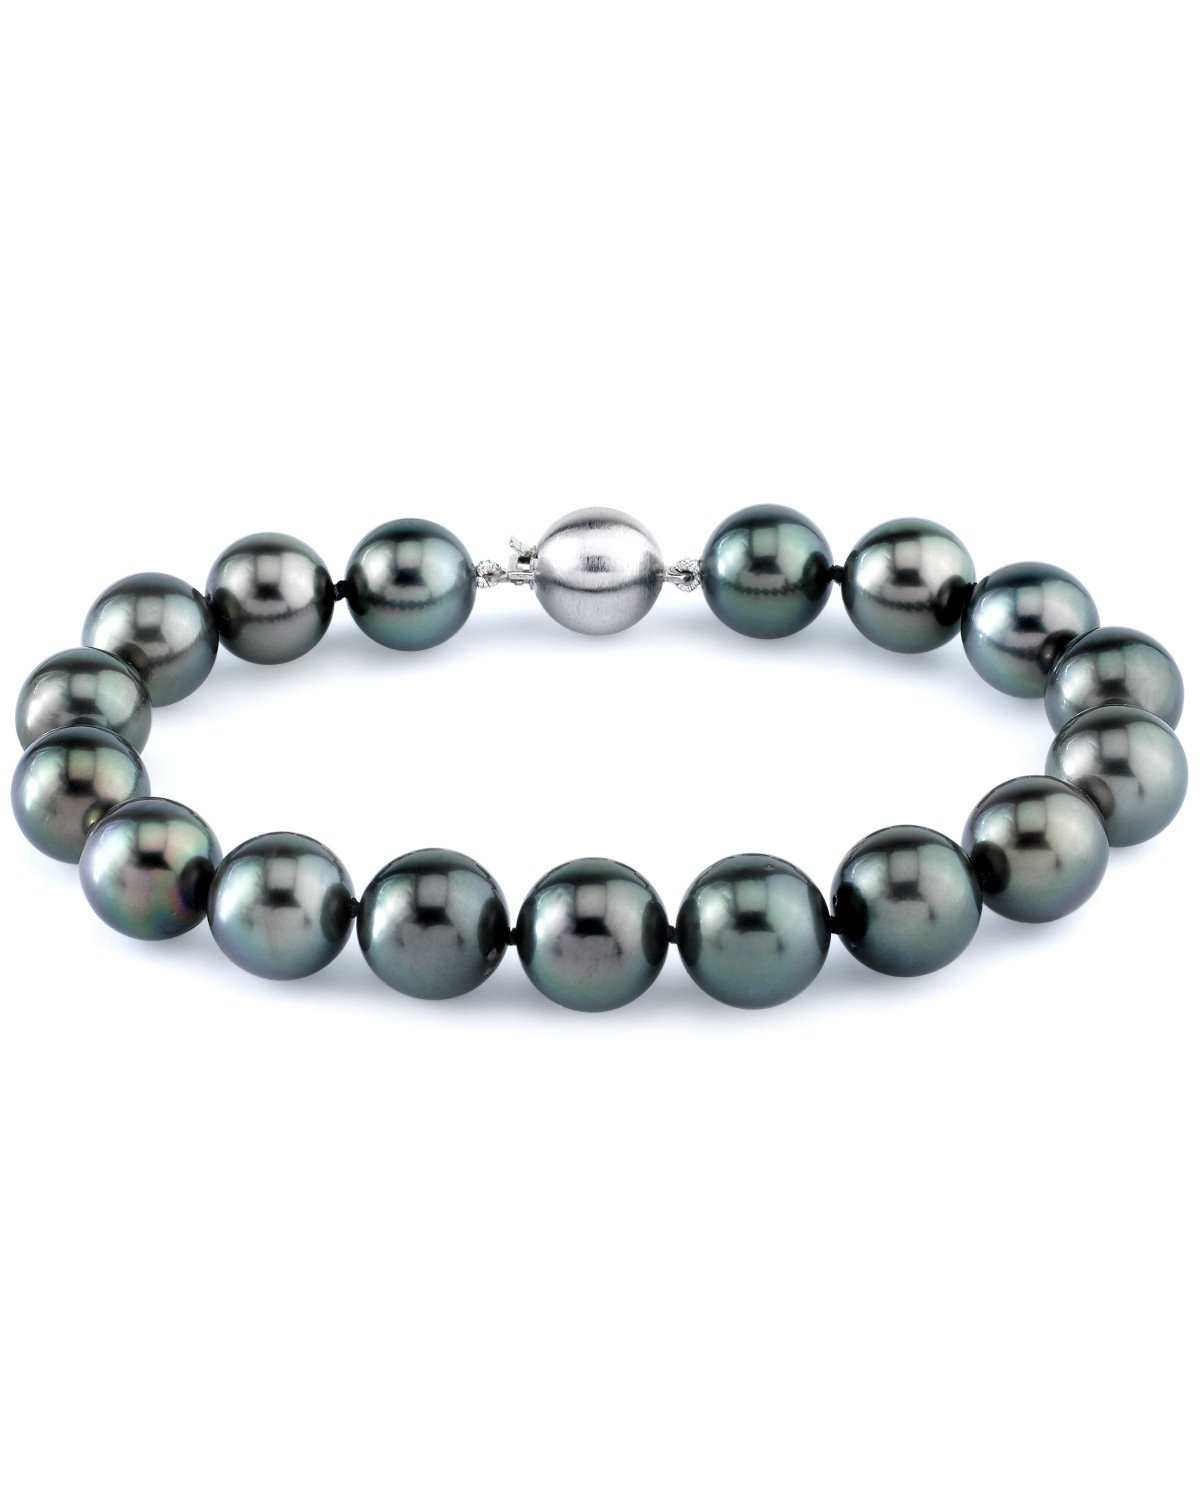 14K Gold 10-11mm Tahitian South Sea Cultured Pearl Bracelet by The Pearl Source